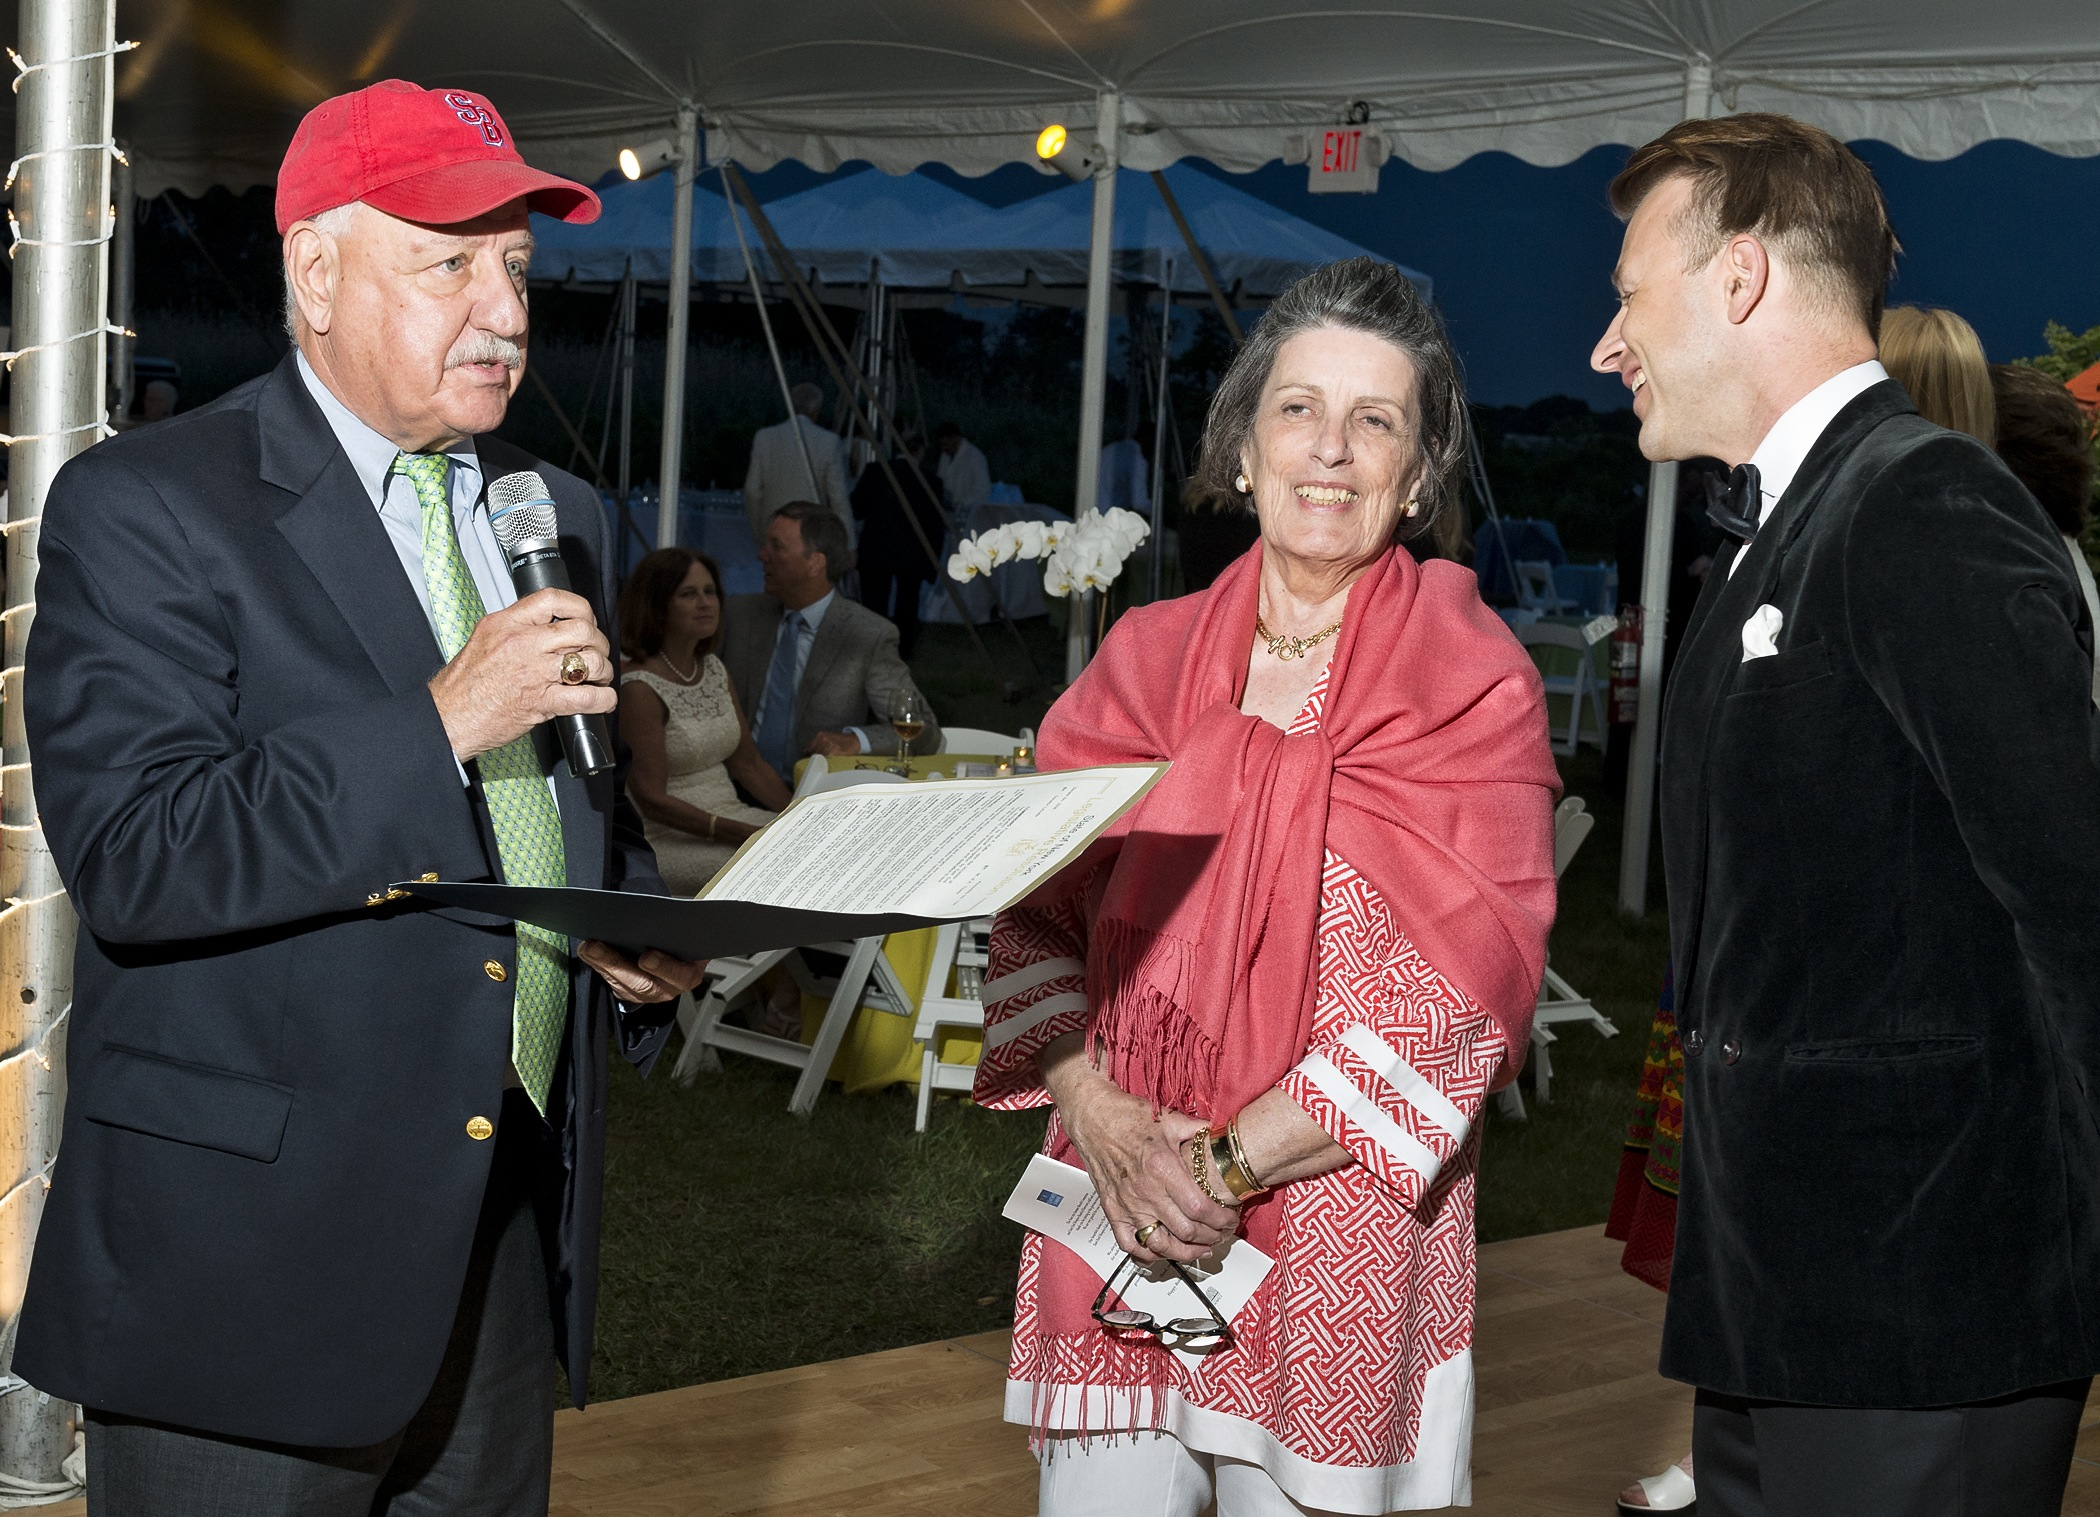 image: senator kenneth p. laValle, president and ceo of eeh priscilla ruffin and emcee and poet lucas hunt